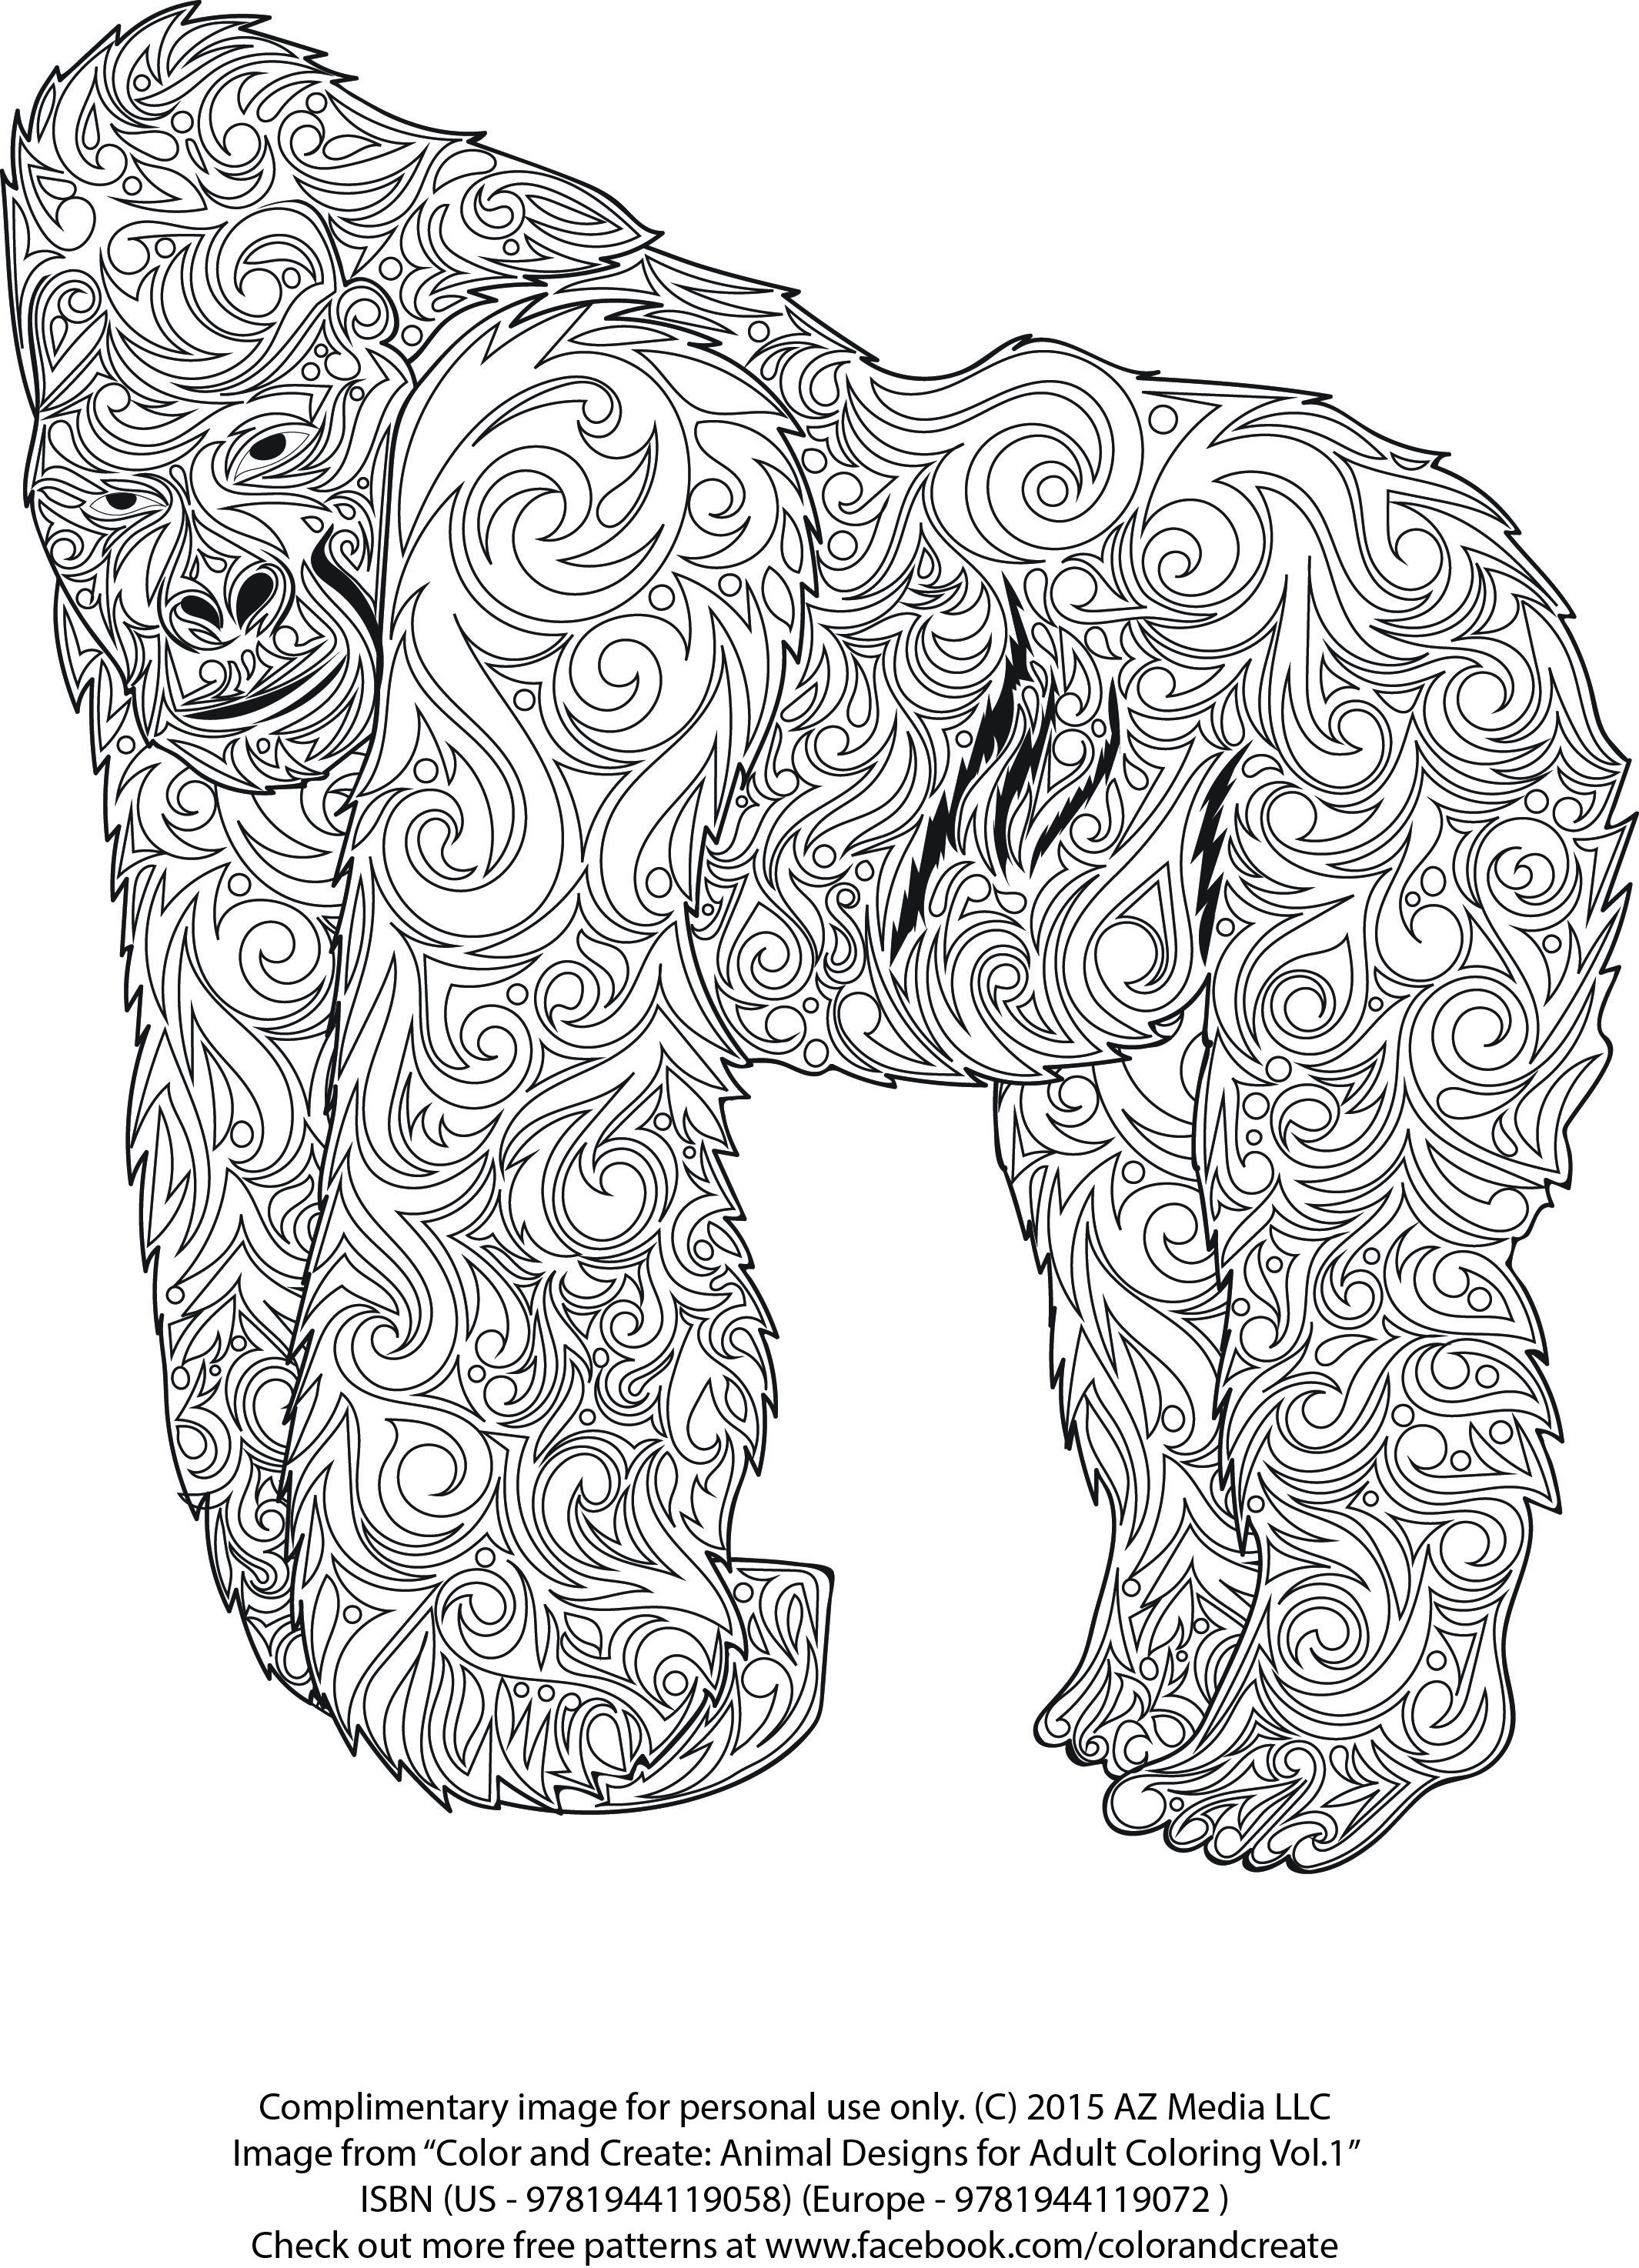 Complimentary Animal coloring pattern